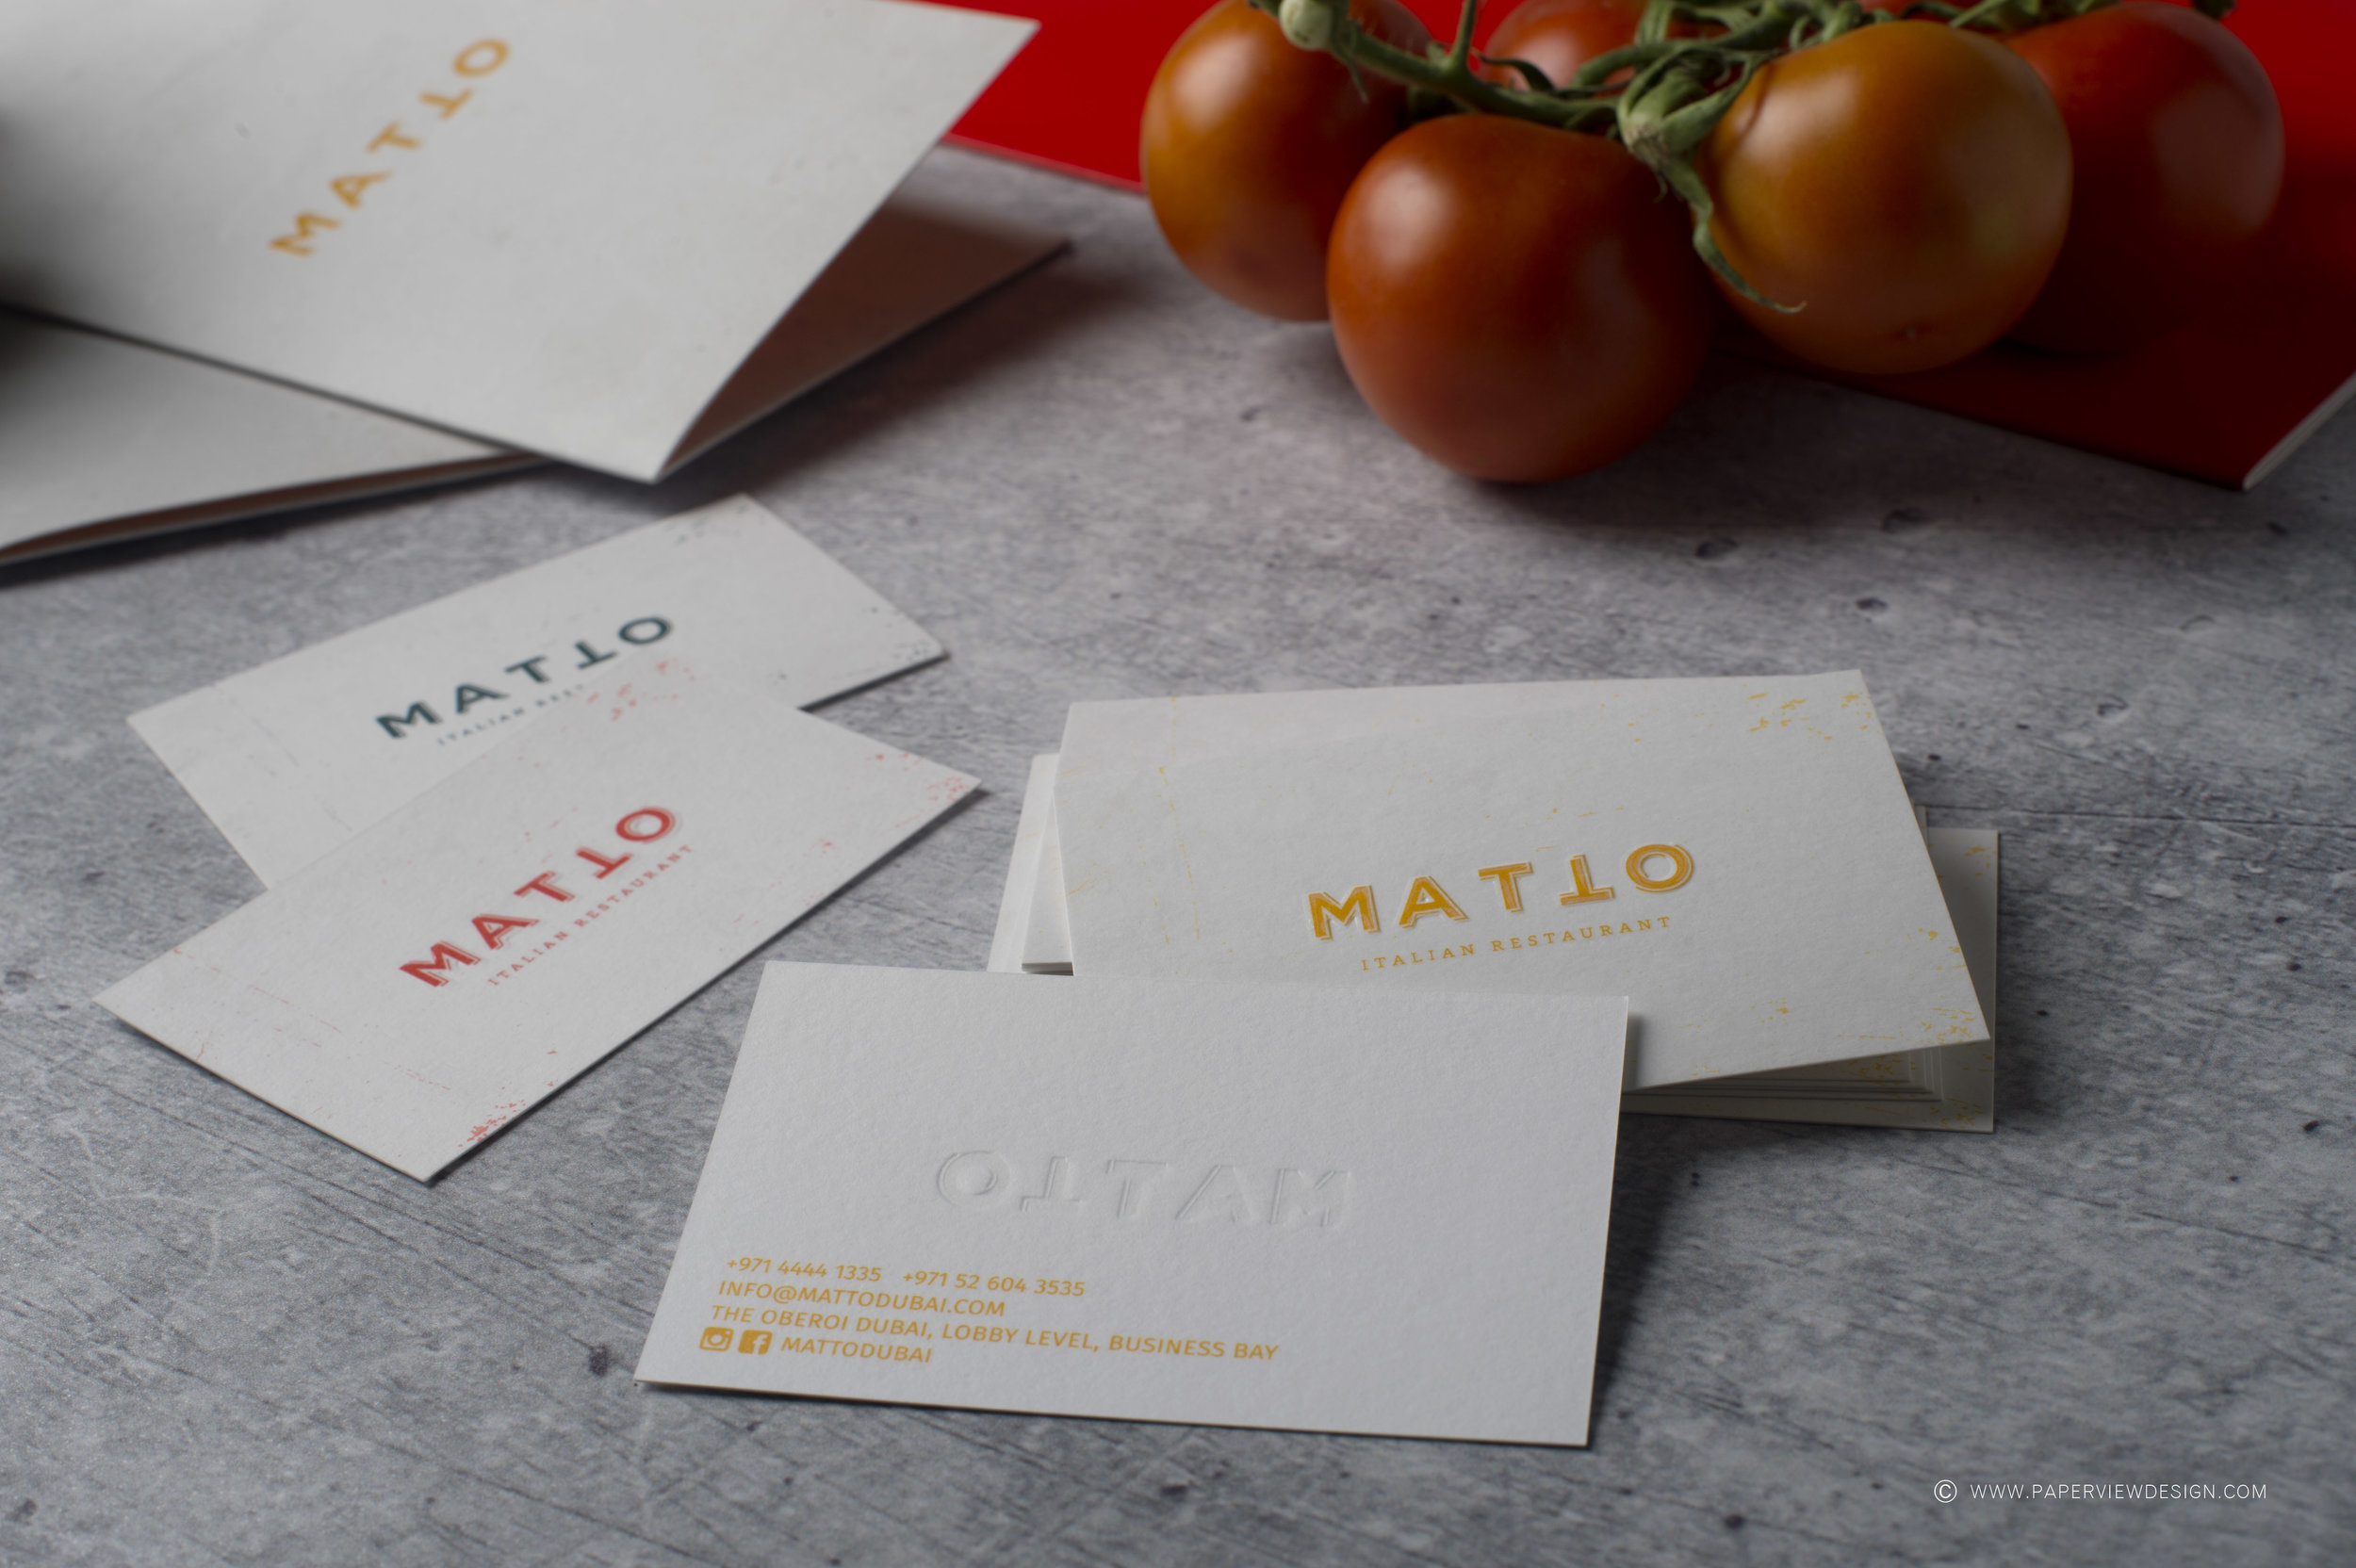 Matto-Restaurant-Identity-Branding-Business-Cards-Embossing-Debossing-Printing-Effects-Papers-Concrete